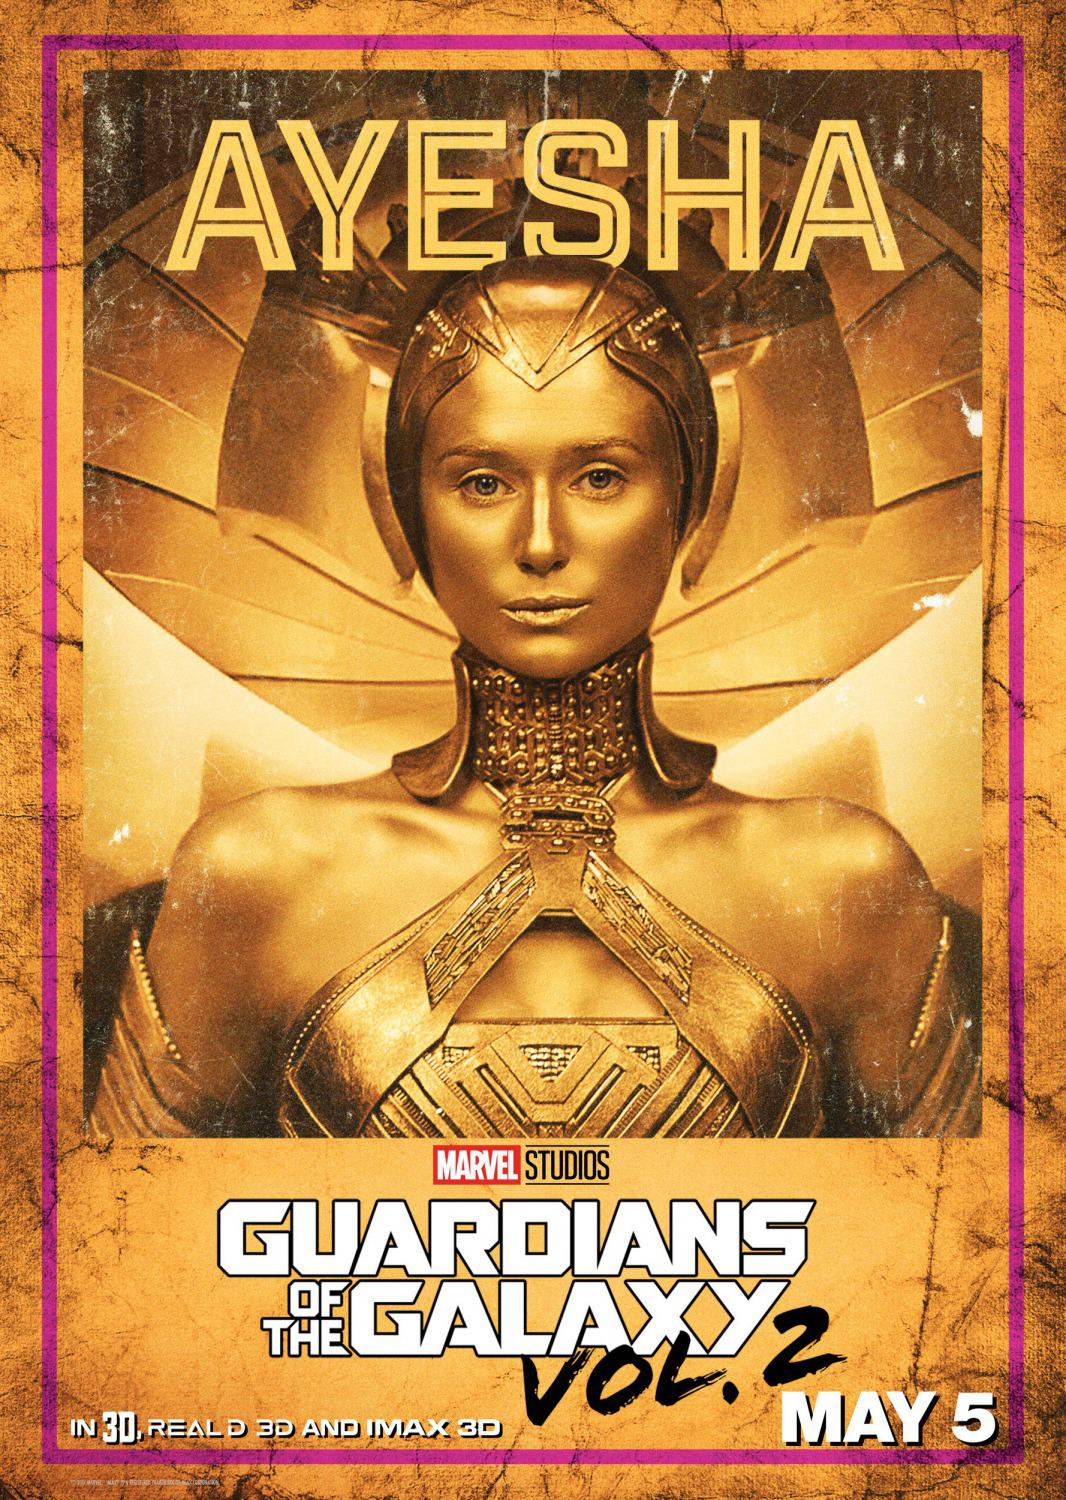 Guardians of the Galaxy vol two - Guardiani della Galassia 2 - Ayesha